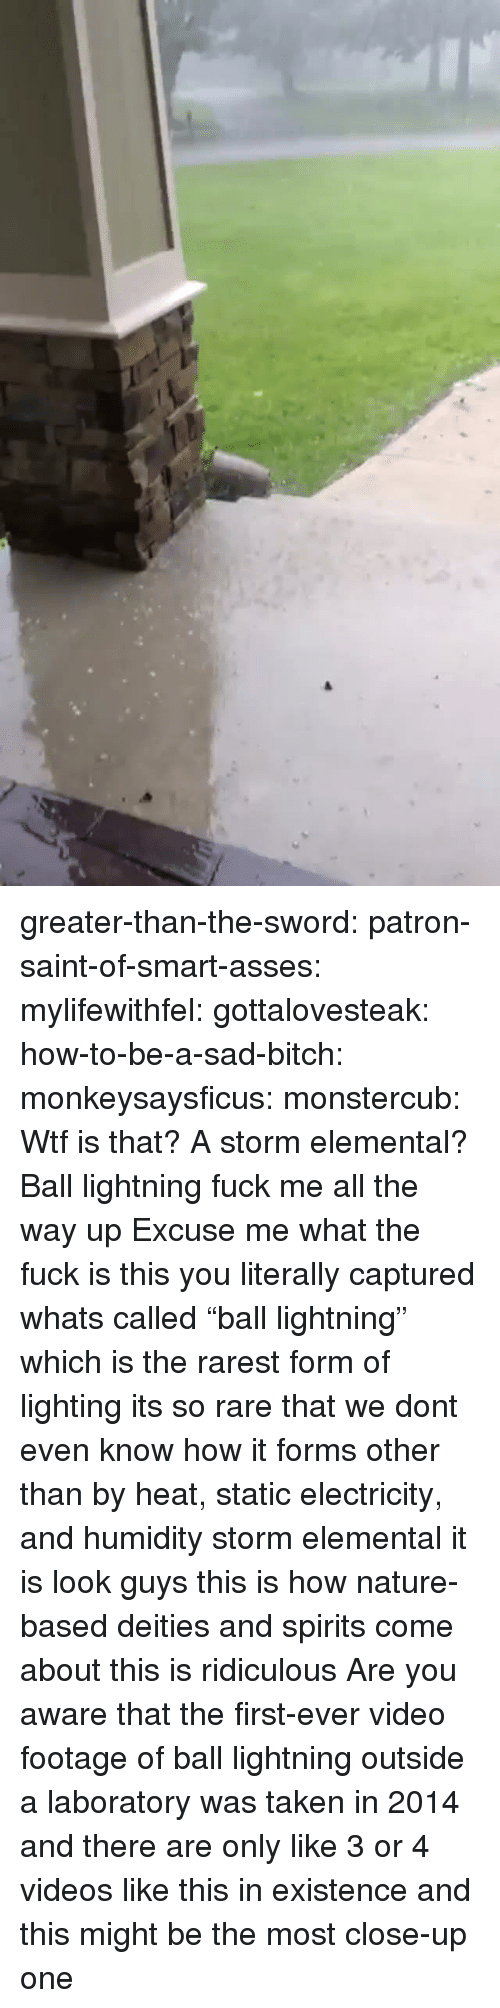 "How To Be A: greater-than-the-sword:  patron-saint-of-smart-asses:  mylifewithfel:  gottalovesteak:  how-to-be-a-sad-bitch:  monkeysaysficus:   monstercub: Wtf is that? A storm elemental?  Ball lightning fuck me all the way up   Excuse me what the fuck is this  you literally captured whats called ""ball lightning"" which is the rarest form of lighting its so rare that we dont even know how it forms other than by heat, static electricity, and humidity  storm elemental it is  look guys this is how nature-based deities and spirits come about this is ridiculous  Are you aware that the first-ever video footage of ball lightning outside a laboratory was taken in 2014 and there are only like 3 or 4 videos like this in existence and this might be the most close-up one"